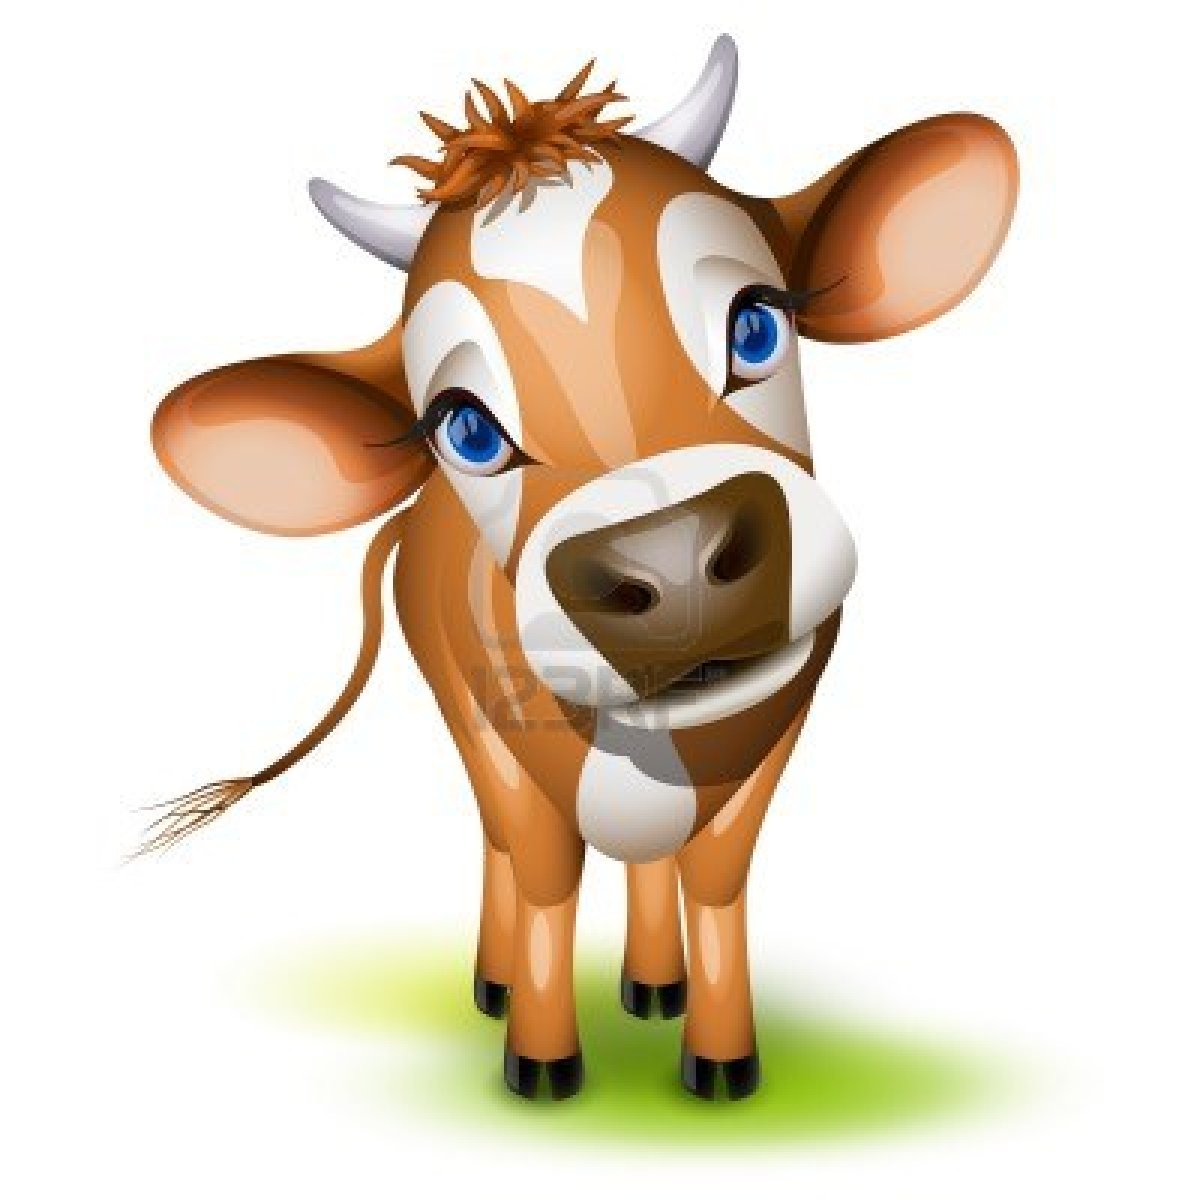 1200x1200 Little Jersey Cow With A Cocked Head And Blue Eyes Stock Photo